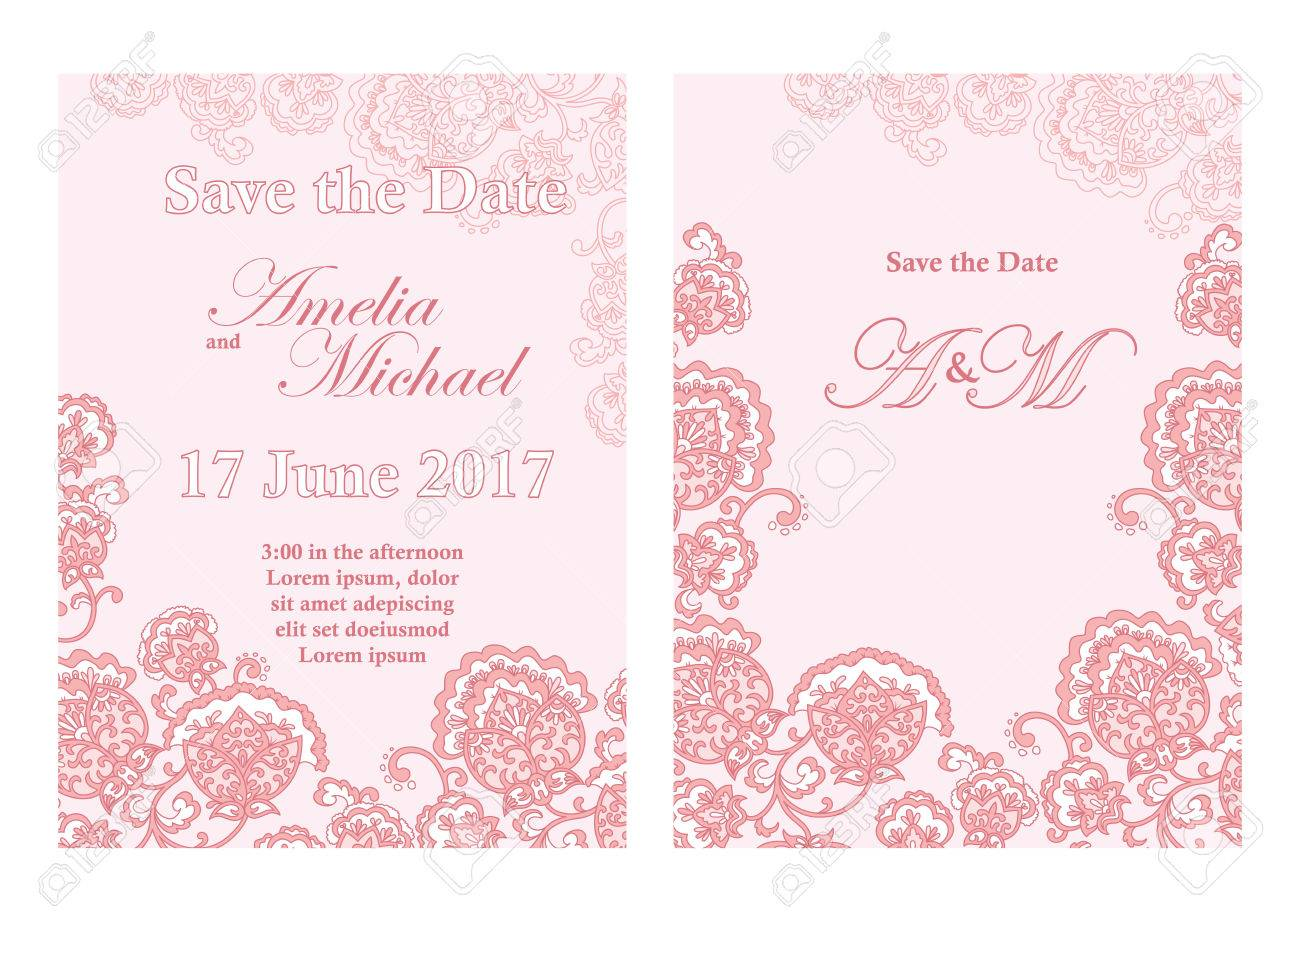 Save The Date Card Template In Pinkcolors Flyer Decorated With